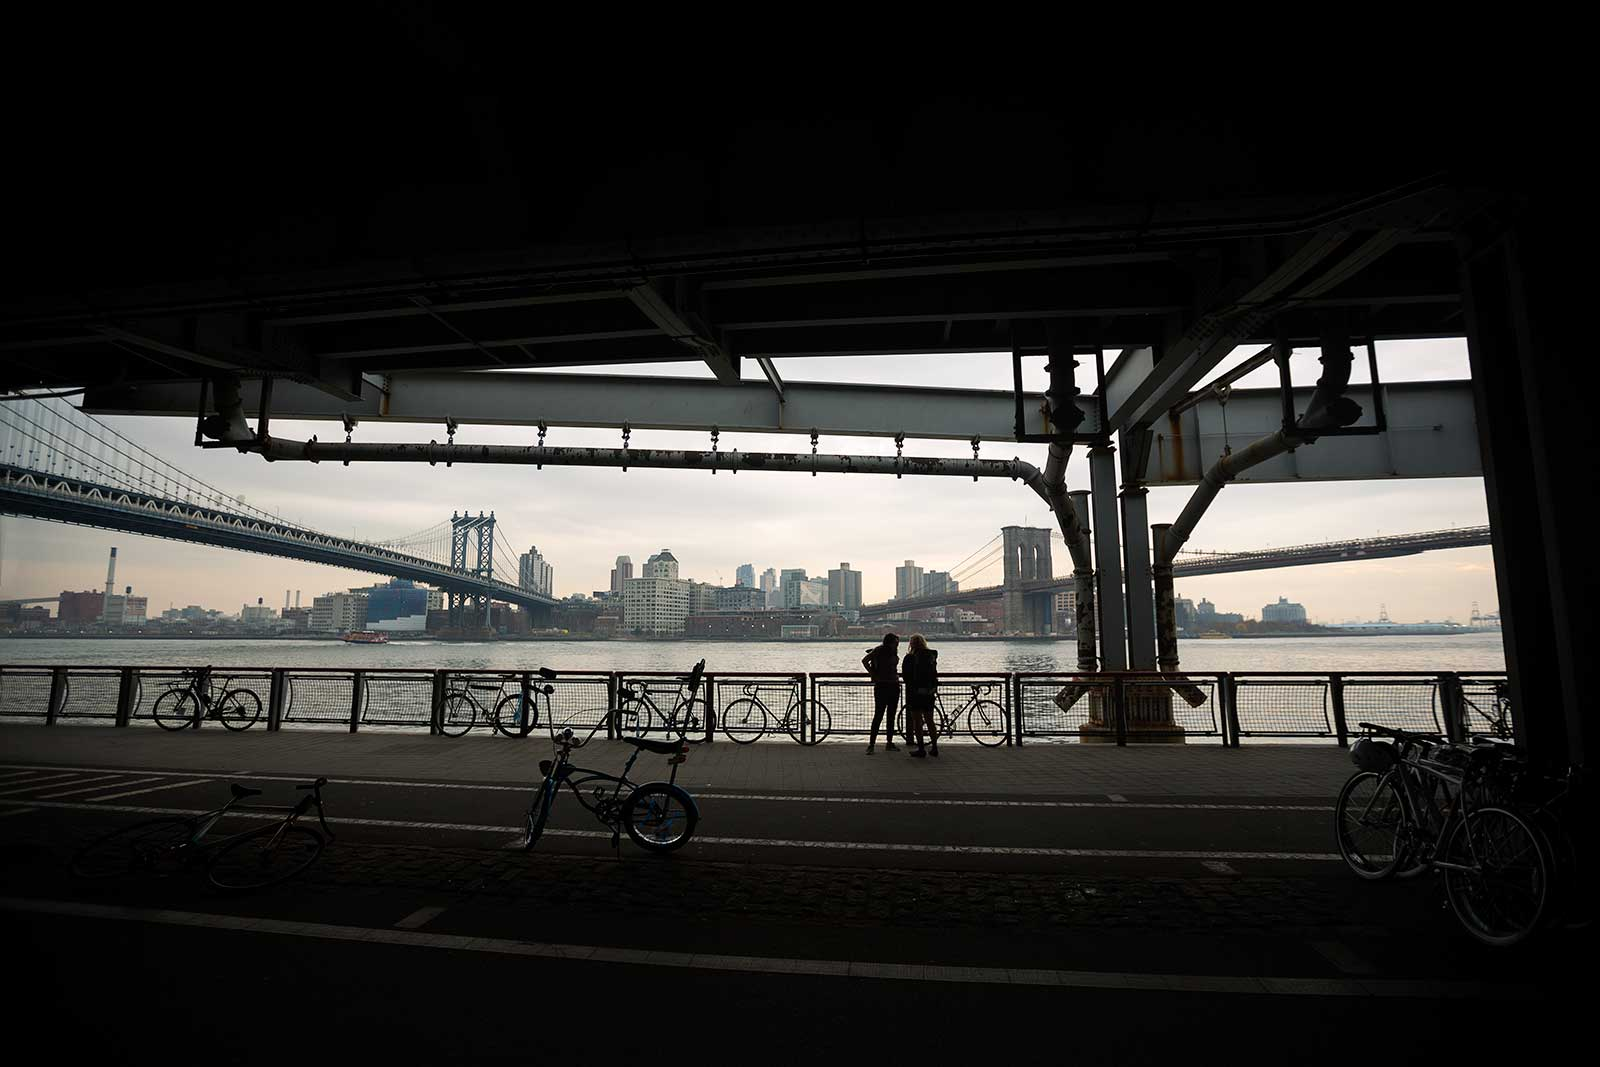 Walking from one end of Manhatten Bridge to Brooklyn Bridge gives you an amazing view of both of them.